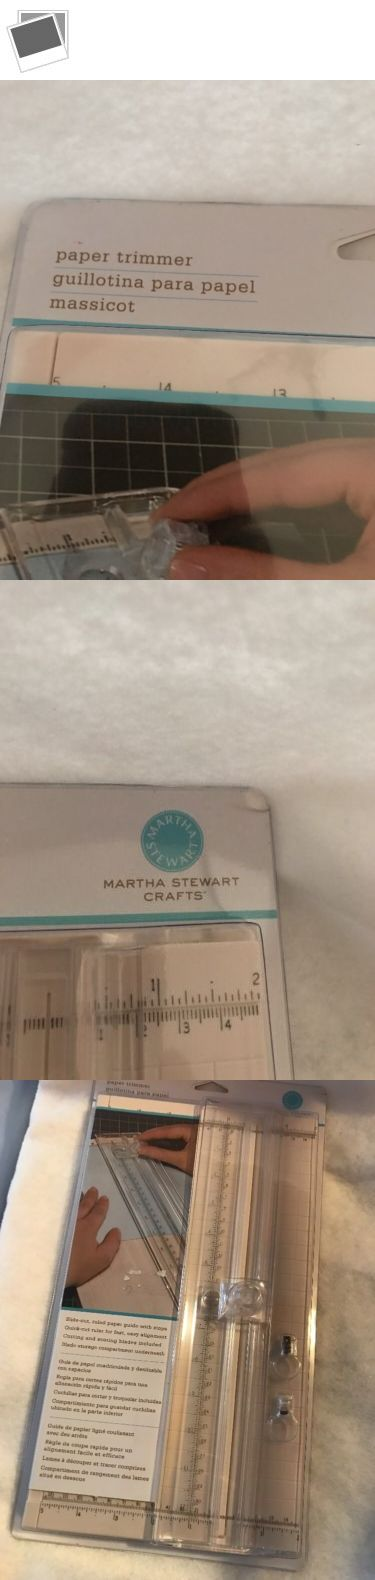 Cutters and Trimmers 183174: Martha Stewart Craft Simple Paper Trimmer 12 Inch -> BUY IT NOW ONLY: $34.99 on eBay!